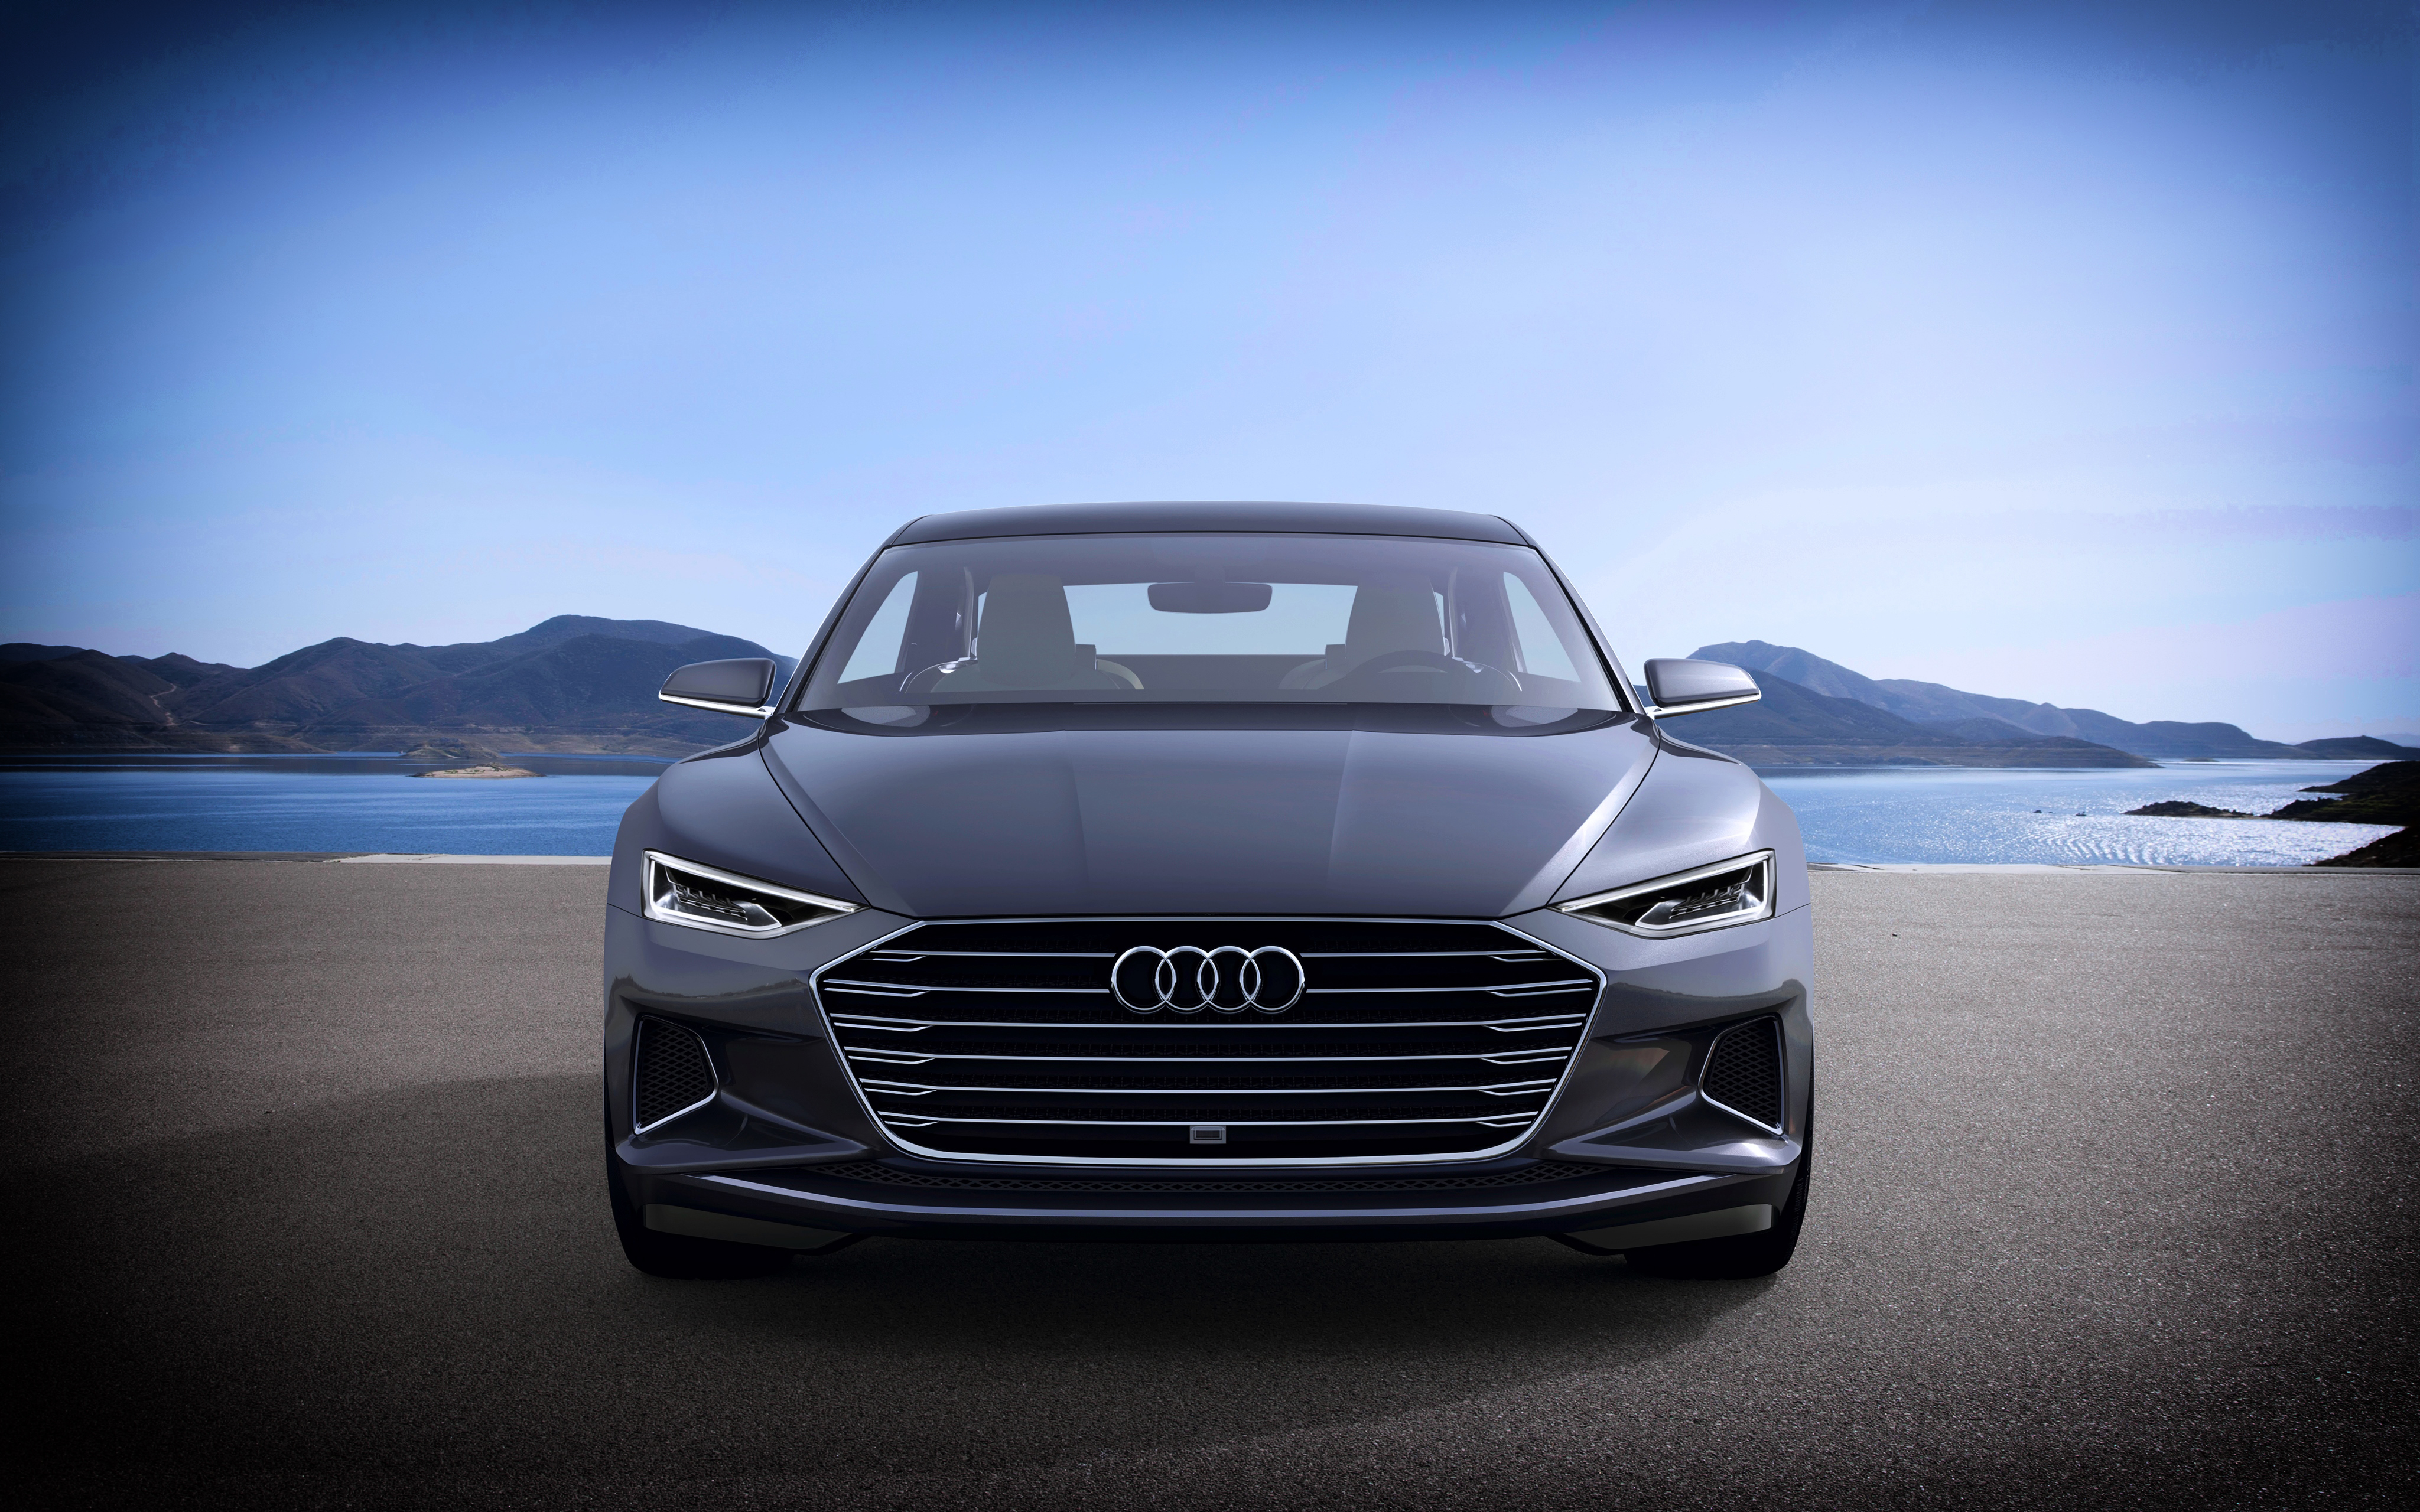 Audi Prologue Piloted Driving Concept car